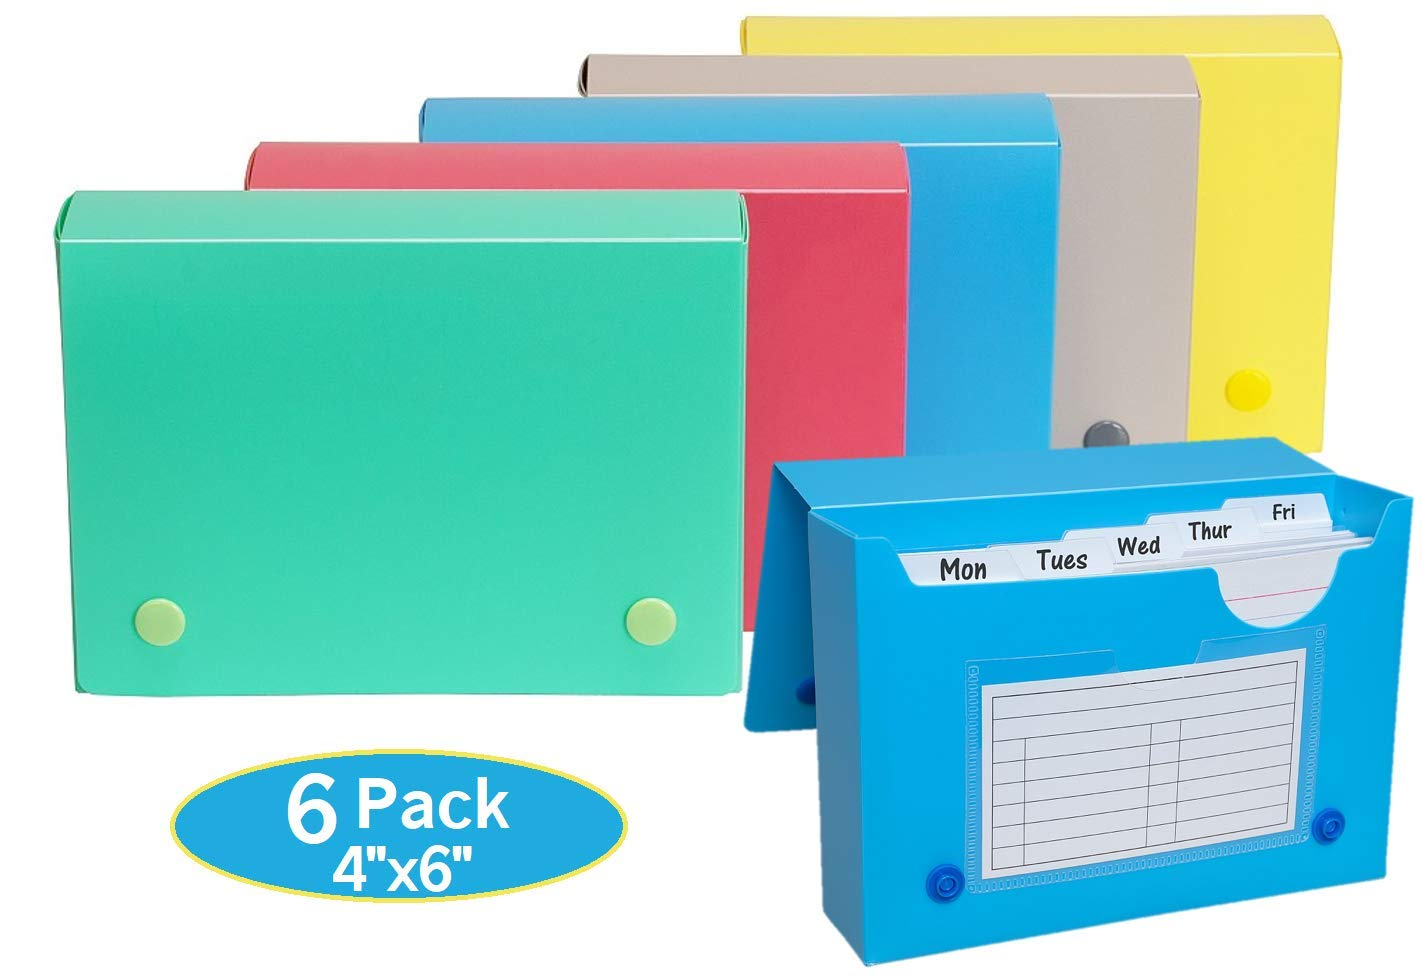 1InTheOffice Index Card Case, 4x6 Index Card Holder, Assorted Colors (6 Pack) by 1InTheOffice